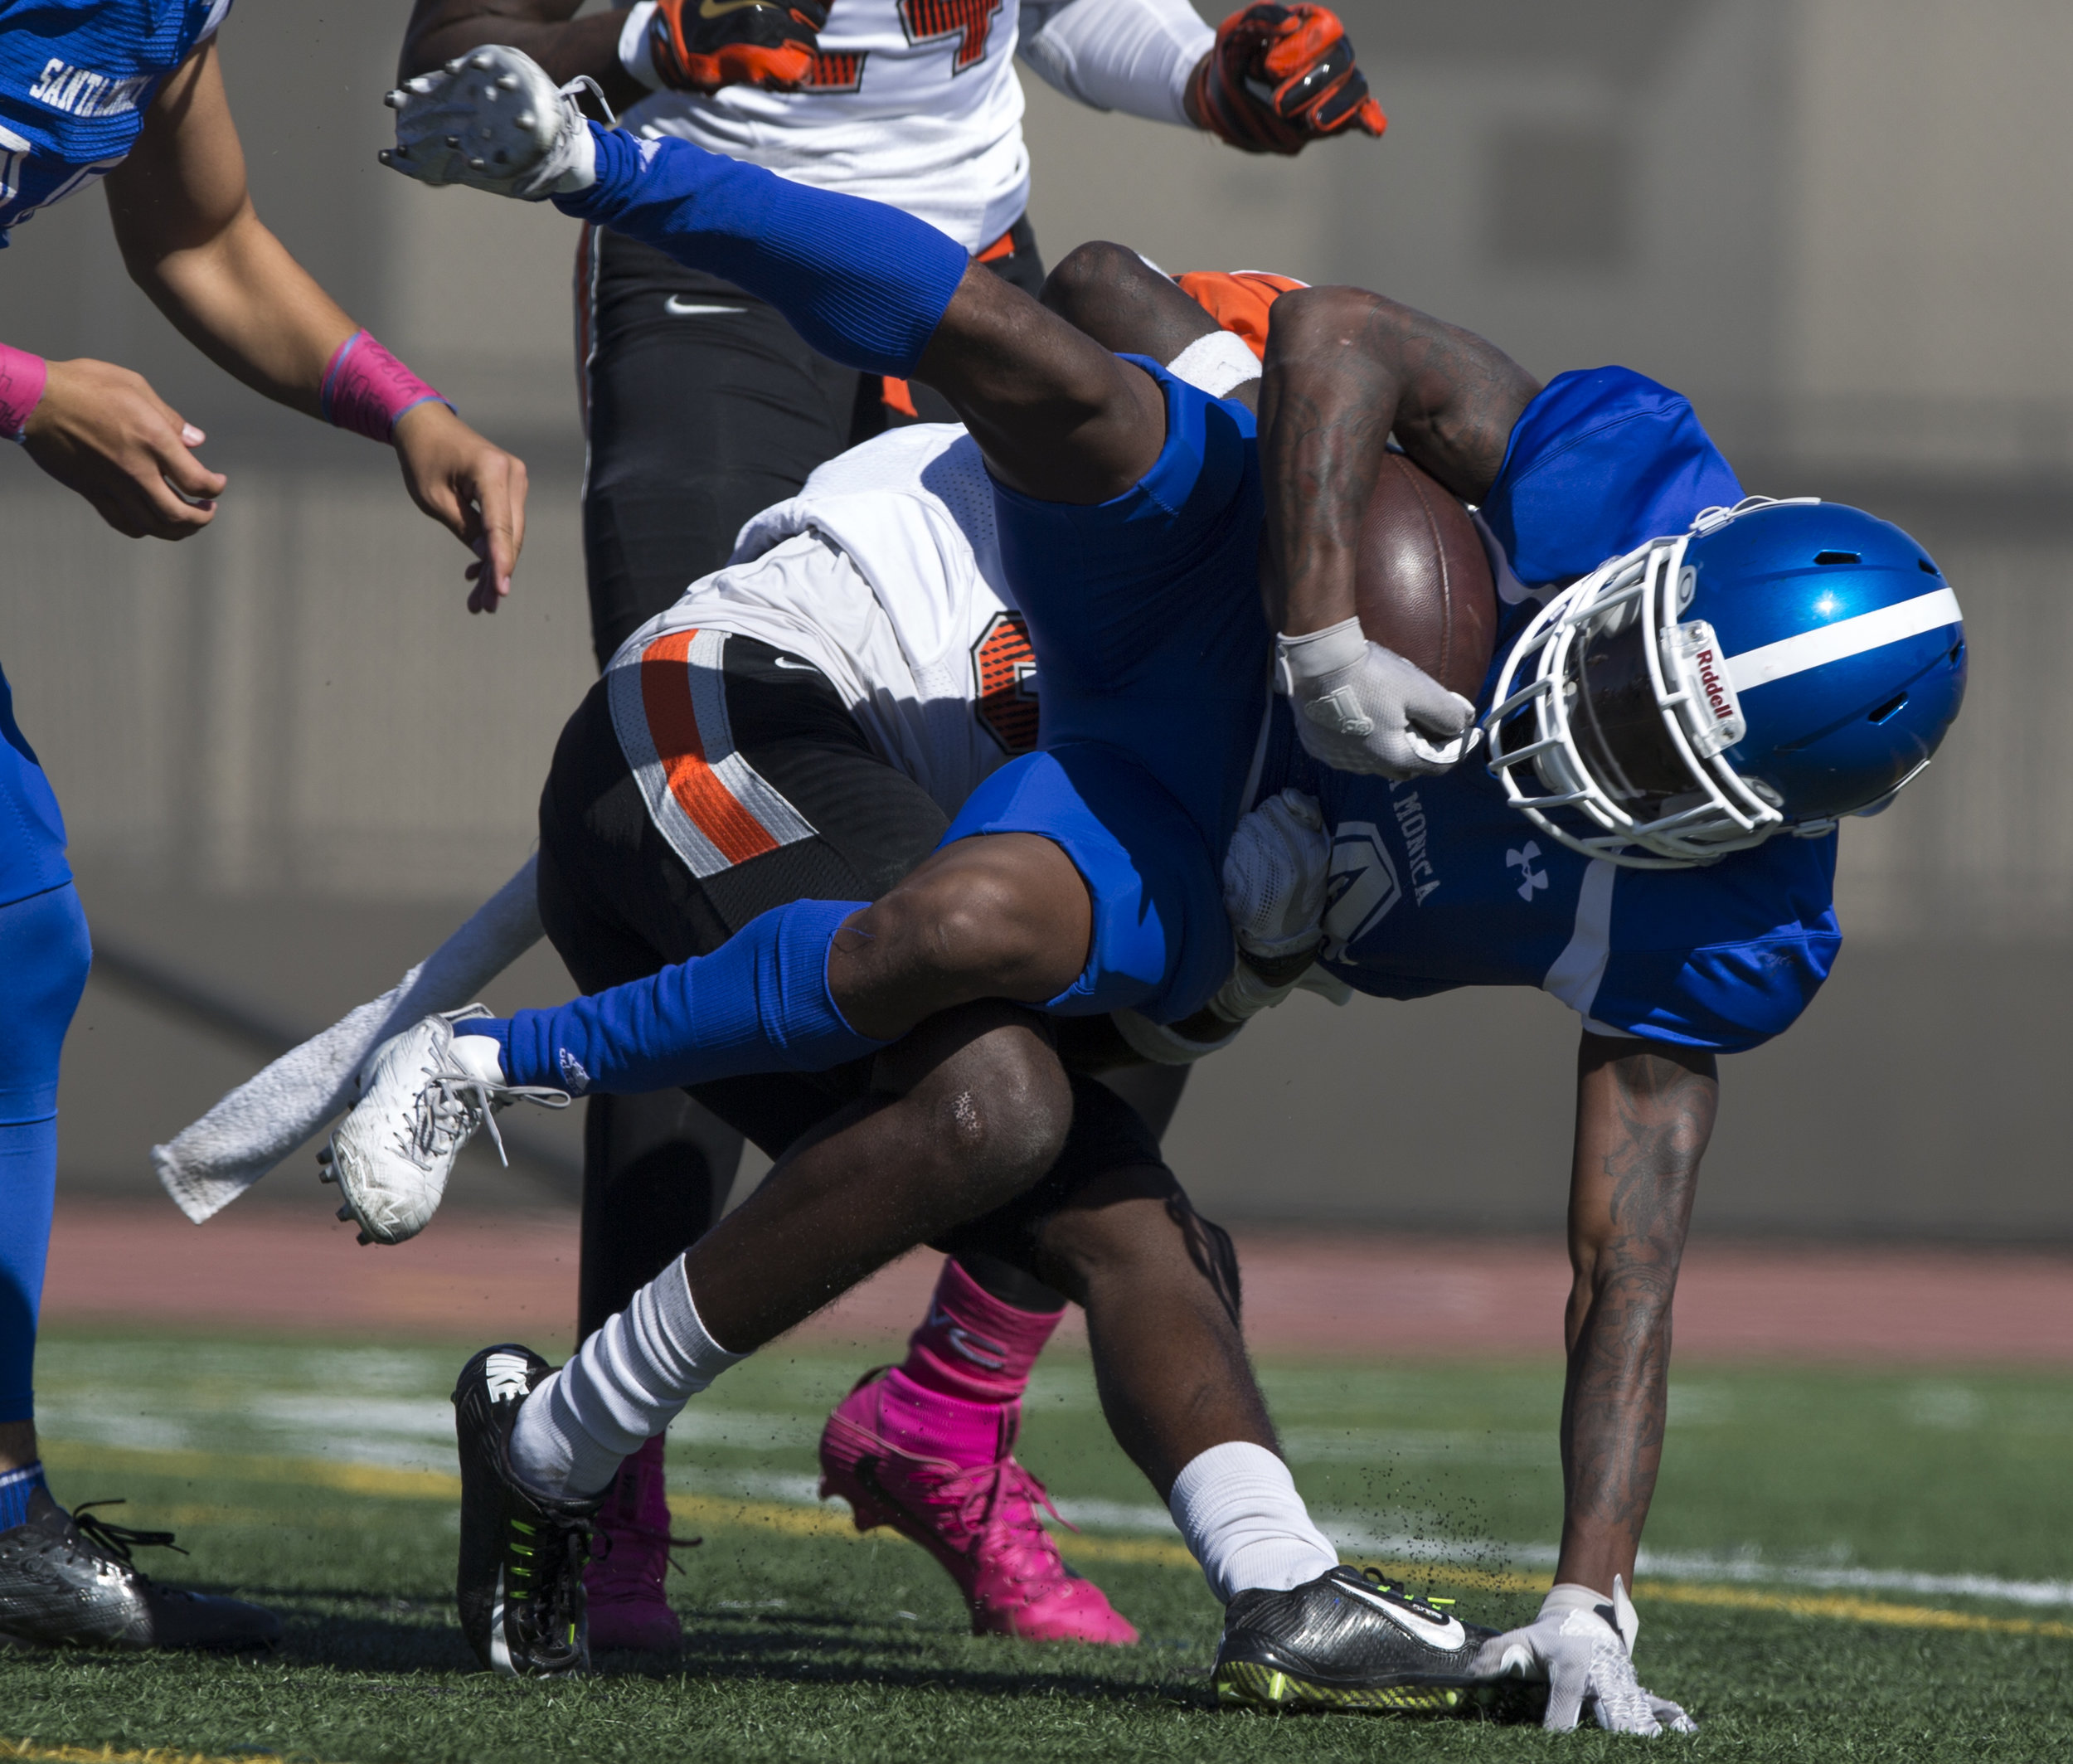 Santa Monica College Corsair wide receiver Franklin Cristian (4) gets tackled by Ventura College Pirate defensive back Jon Hughes (33) on the Corsair Field at Santa Monica College on October 21, 2017 in Santa Monica, California. Corsairs lose to the Pirates 55-0. (Jose Lopez)